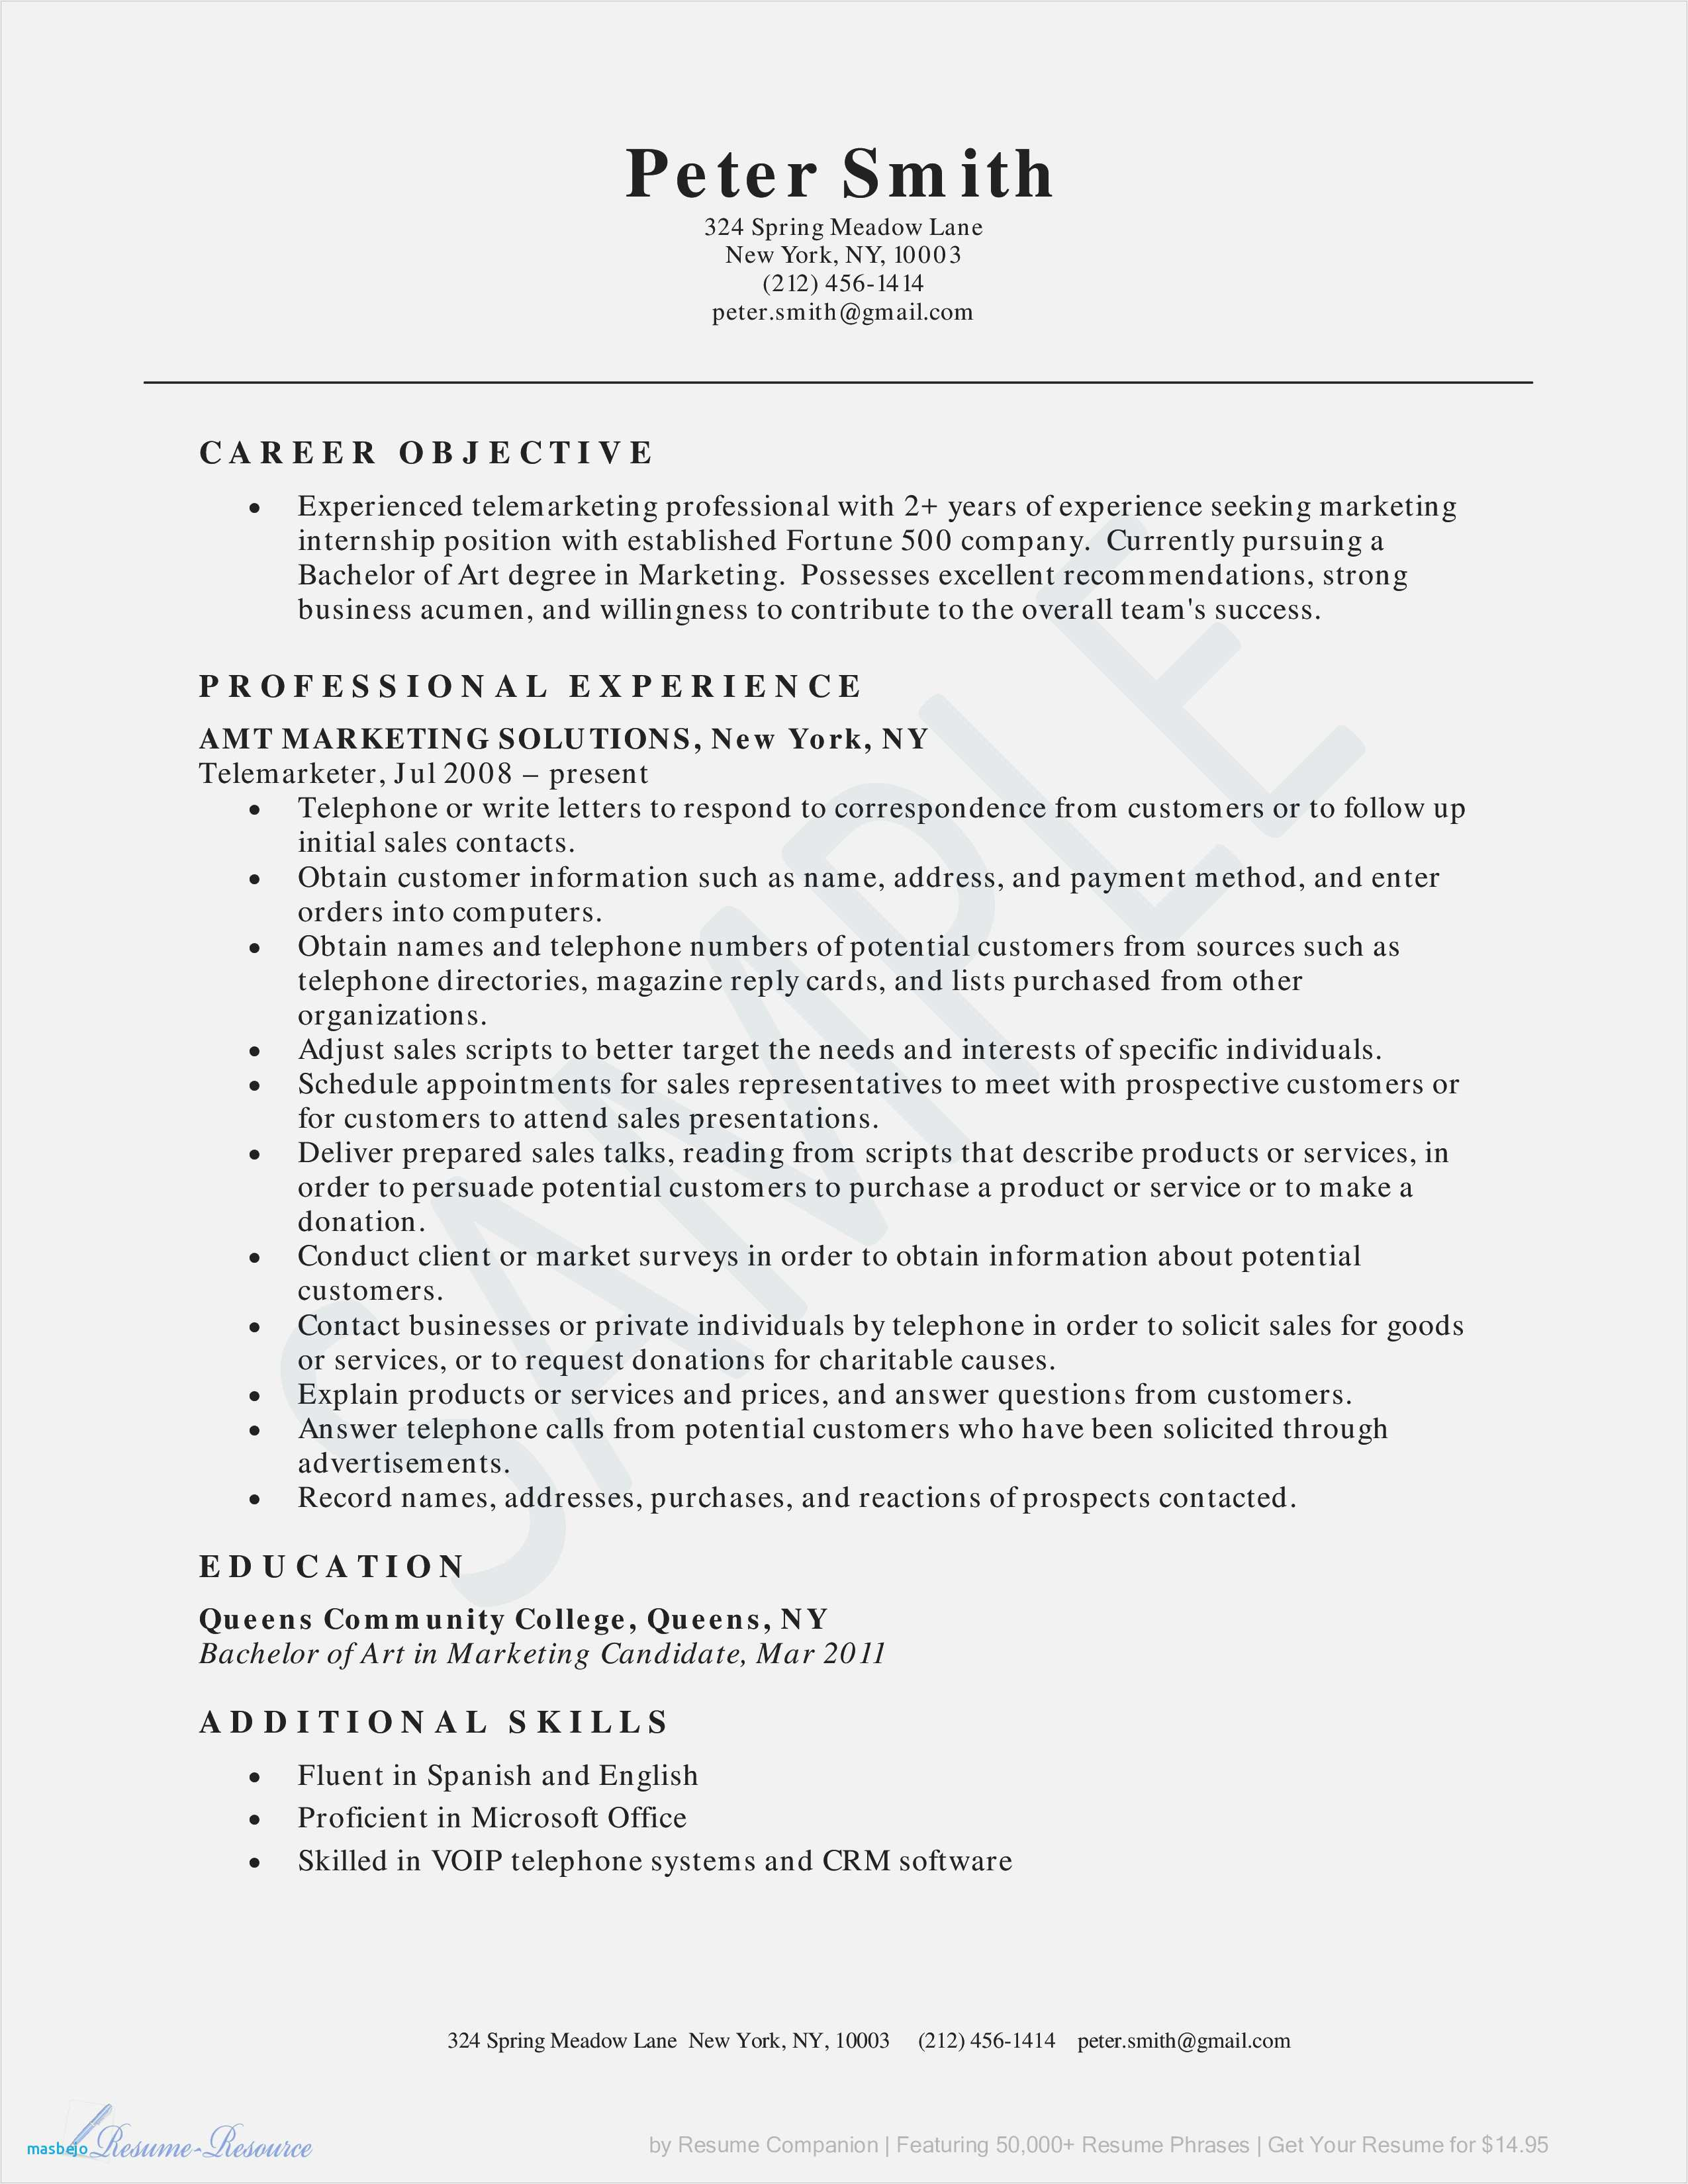 Good Resume Example - 24 Best Resume forms Picture